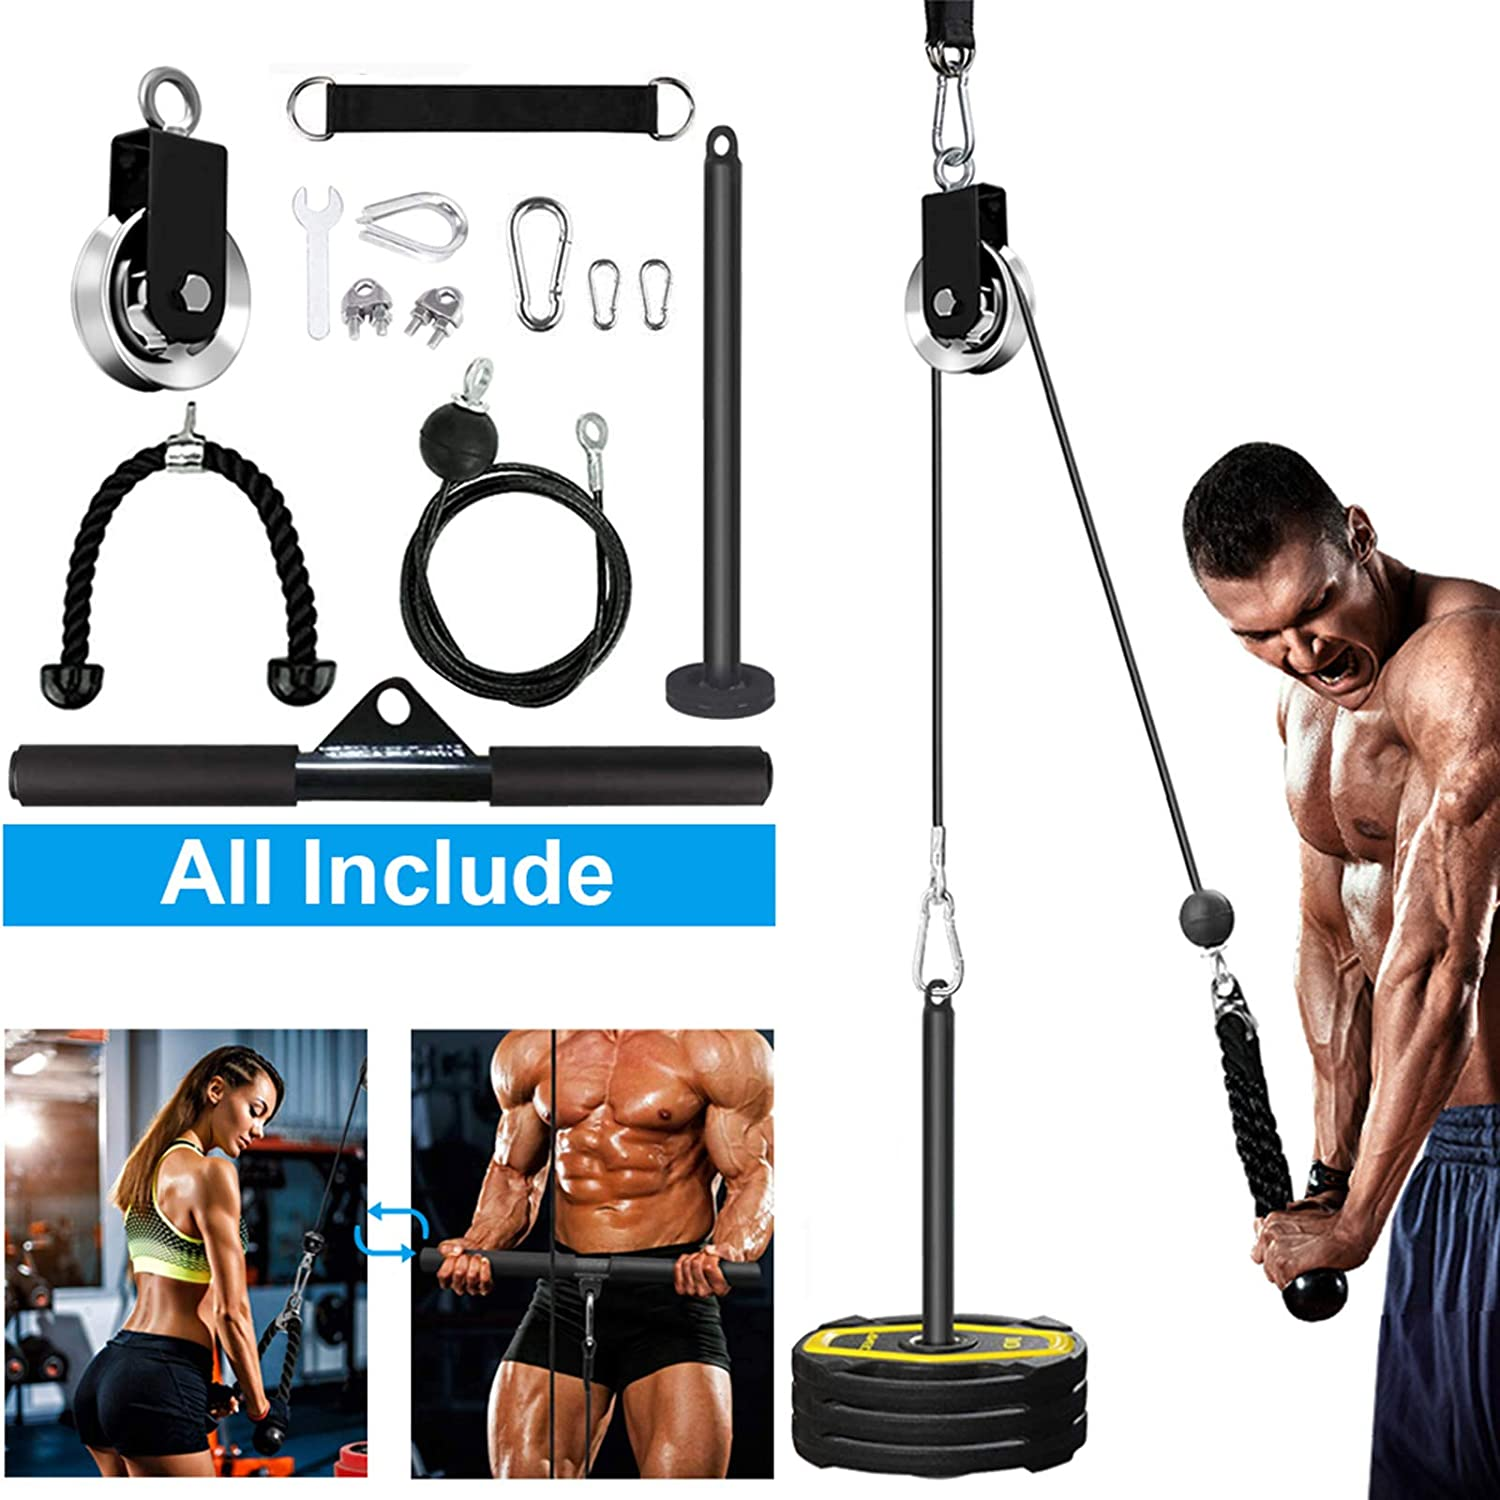 Yamyshine Fitness LAT and Lift Pulley System, Upgraded Pulley Cable Machine for Triceps Pull Down, Biceps Curl, Back, Forearm, Shoulder-Home Gym Equipment